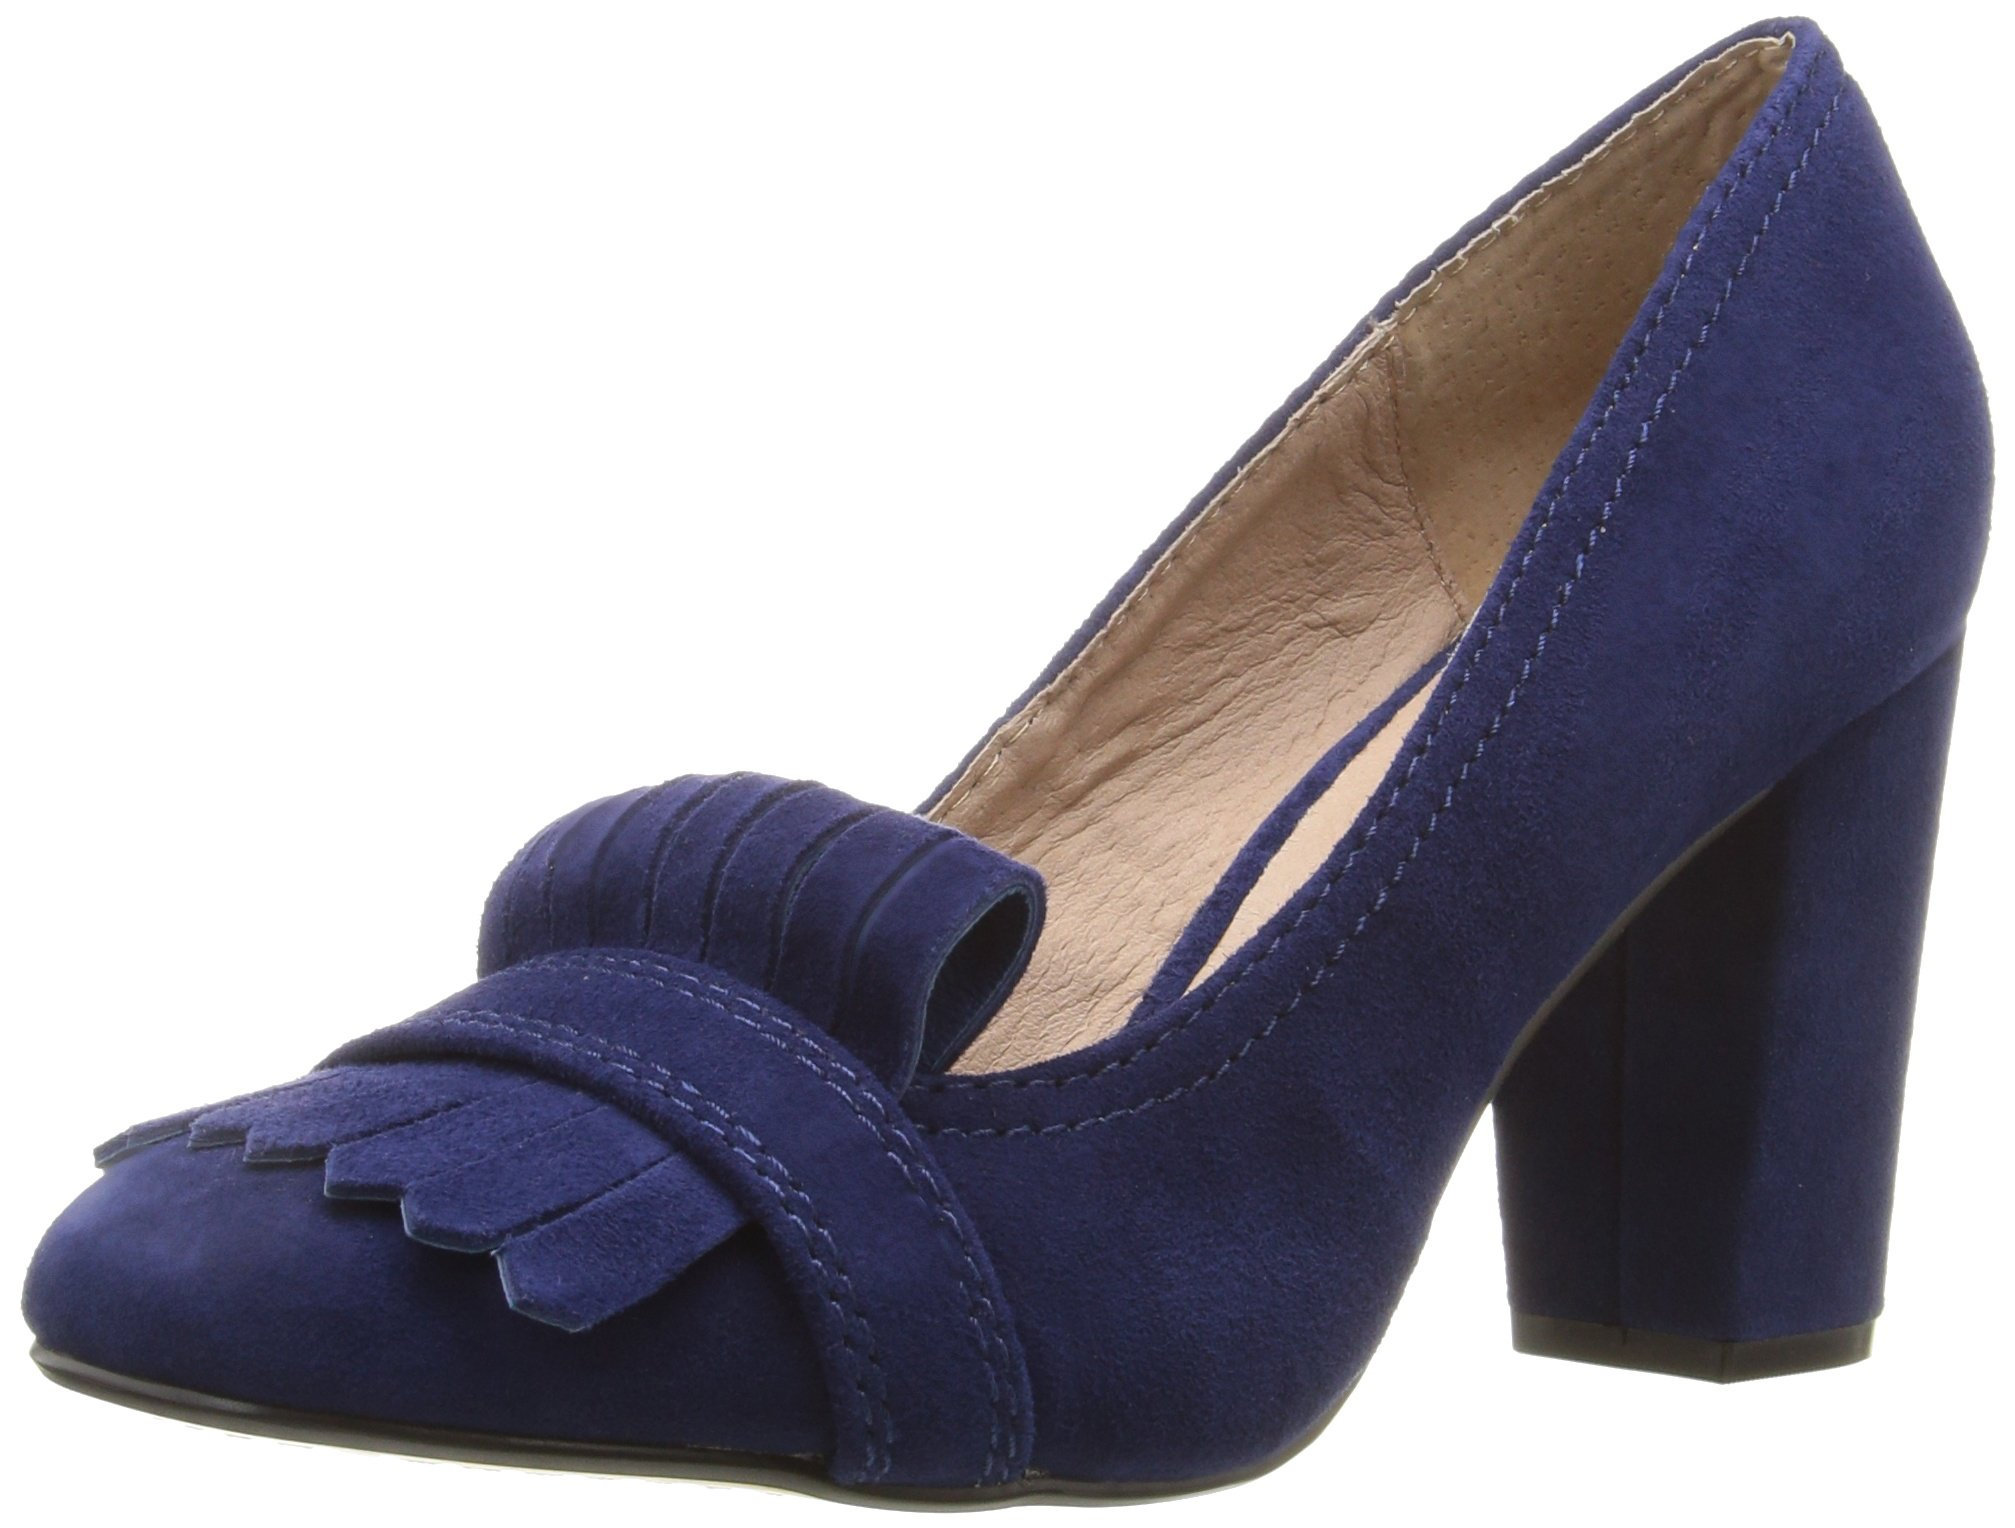 STEVEN by Steve Madden Women's Jade Dress Pump, Blue Suede, 8.5 M US